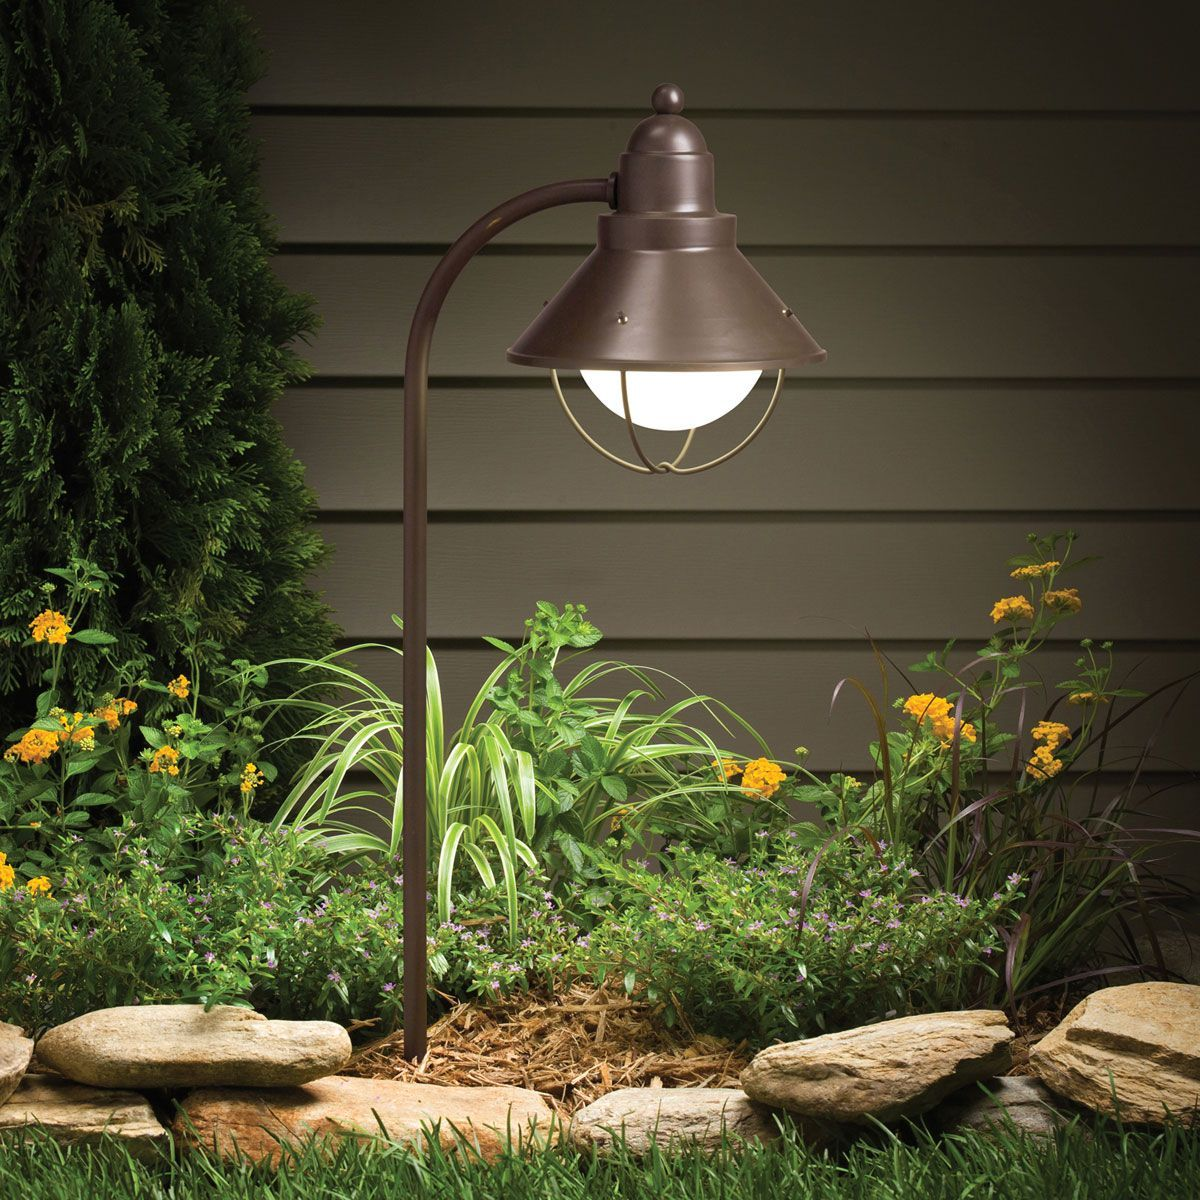 Functional Garden Lighting Two Types Of Lighting Can Be Distinguished In The Gard In 2020 Modern Landscape Lighting Kichler Landscape Lighting Volt Landscape Lighting